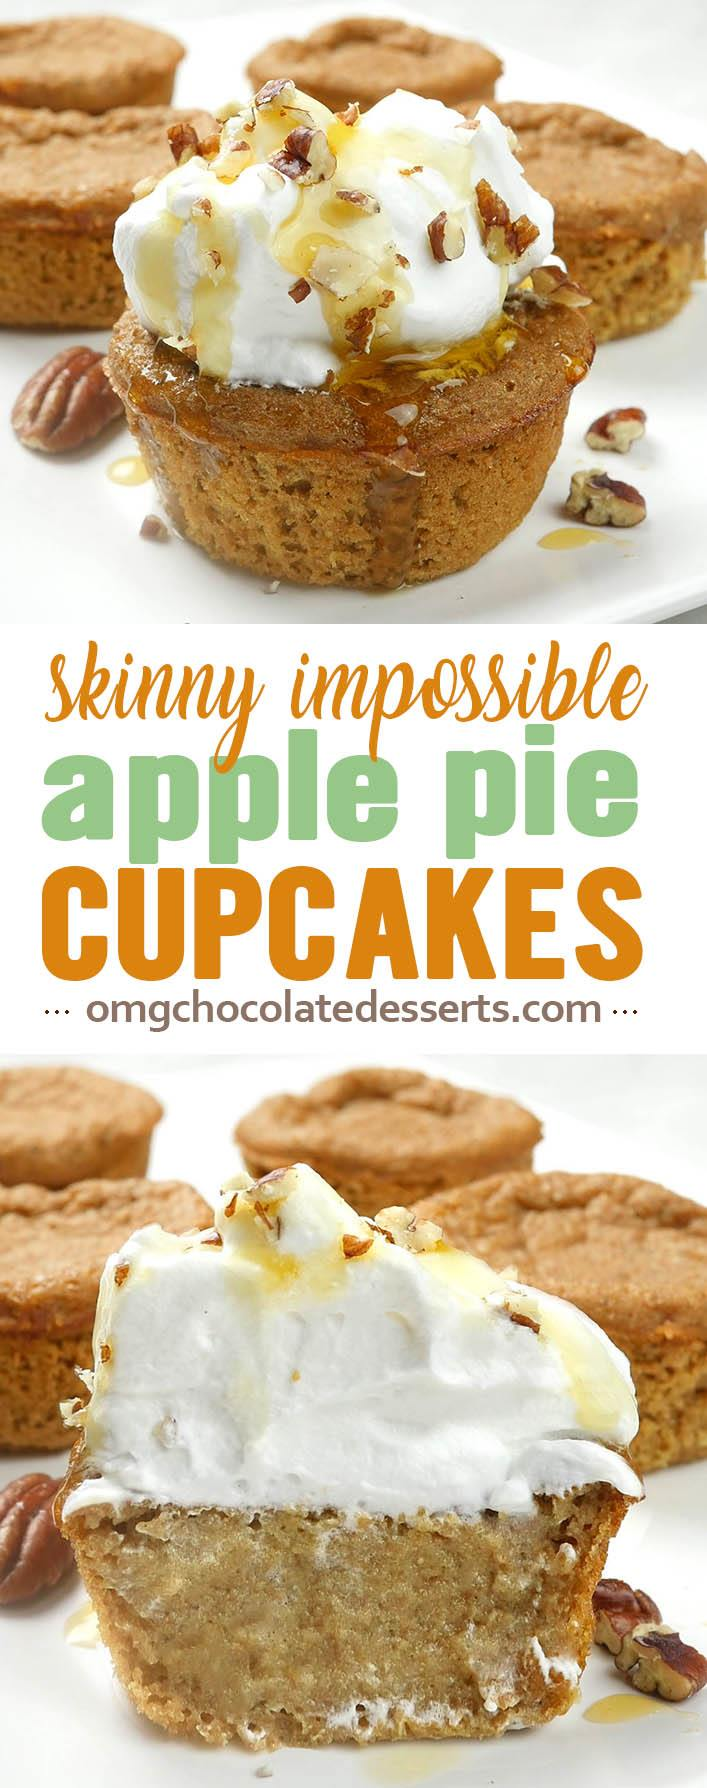 Skinny Impossible Apple Pie Cupcakes is HEALTHY and EASY dessert RECIPE for fall baking season. It's great dessert idea for Halloween party and Thanksgiving dinner table, too.